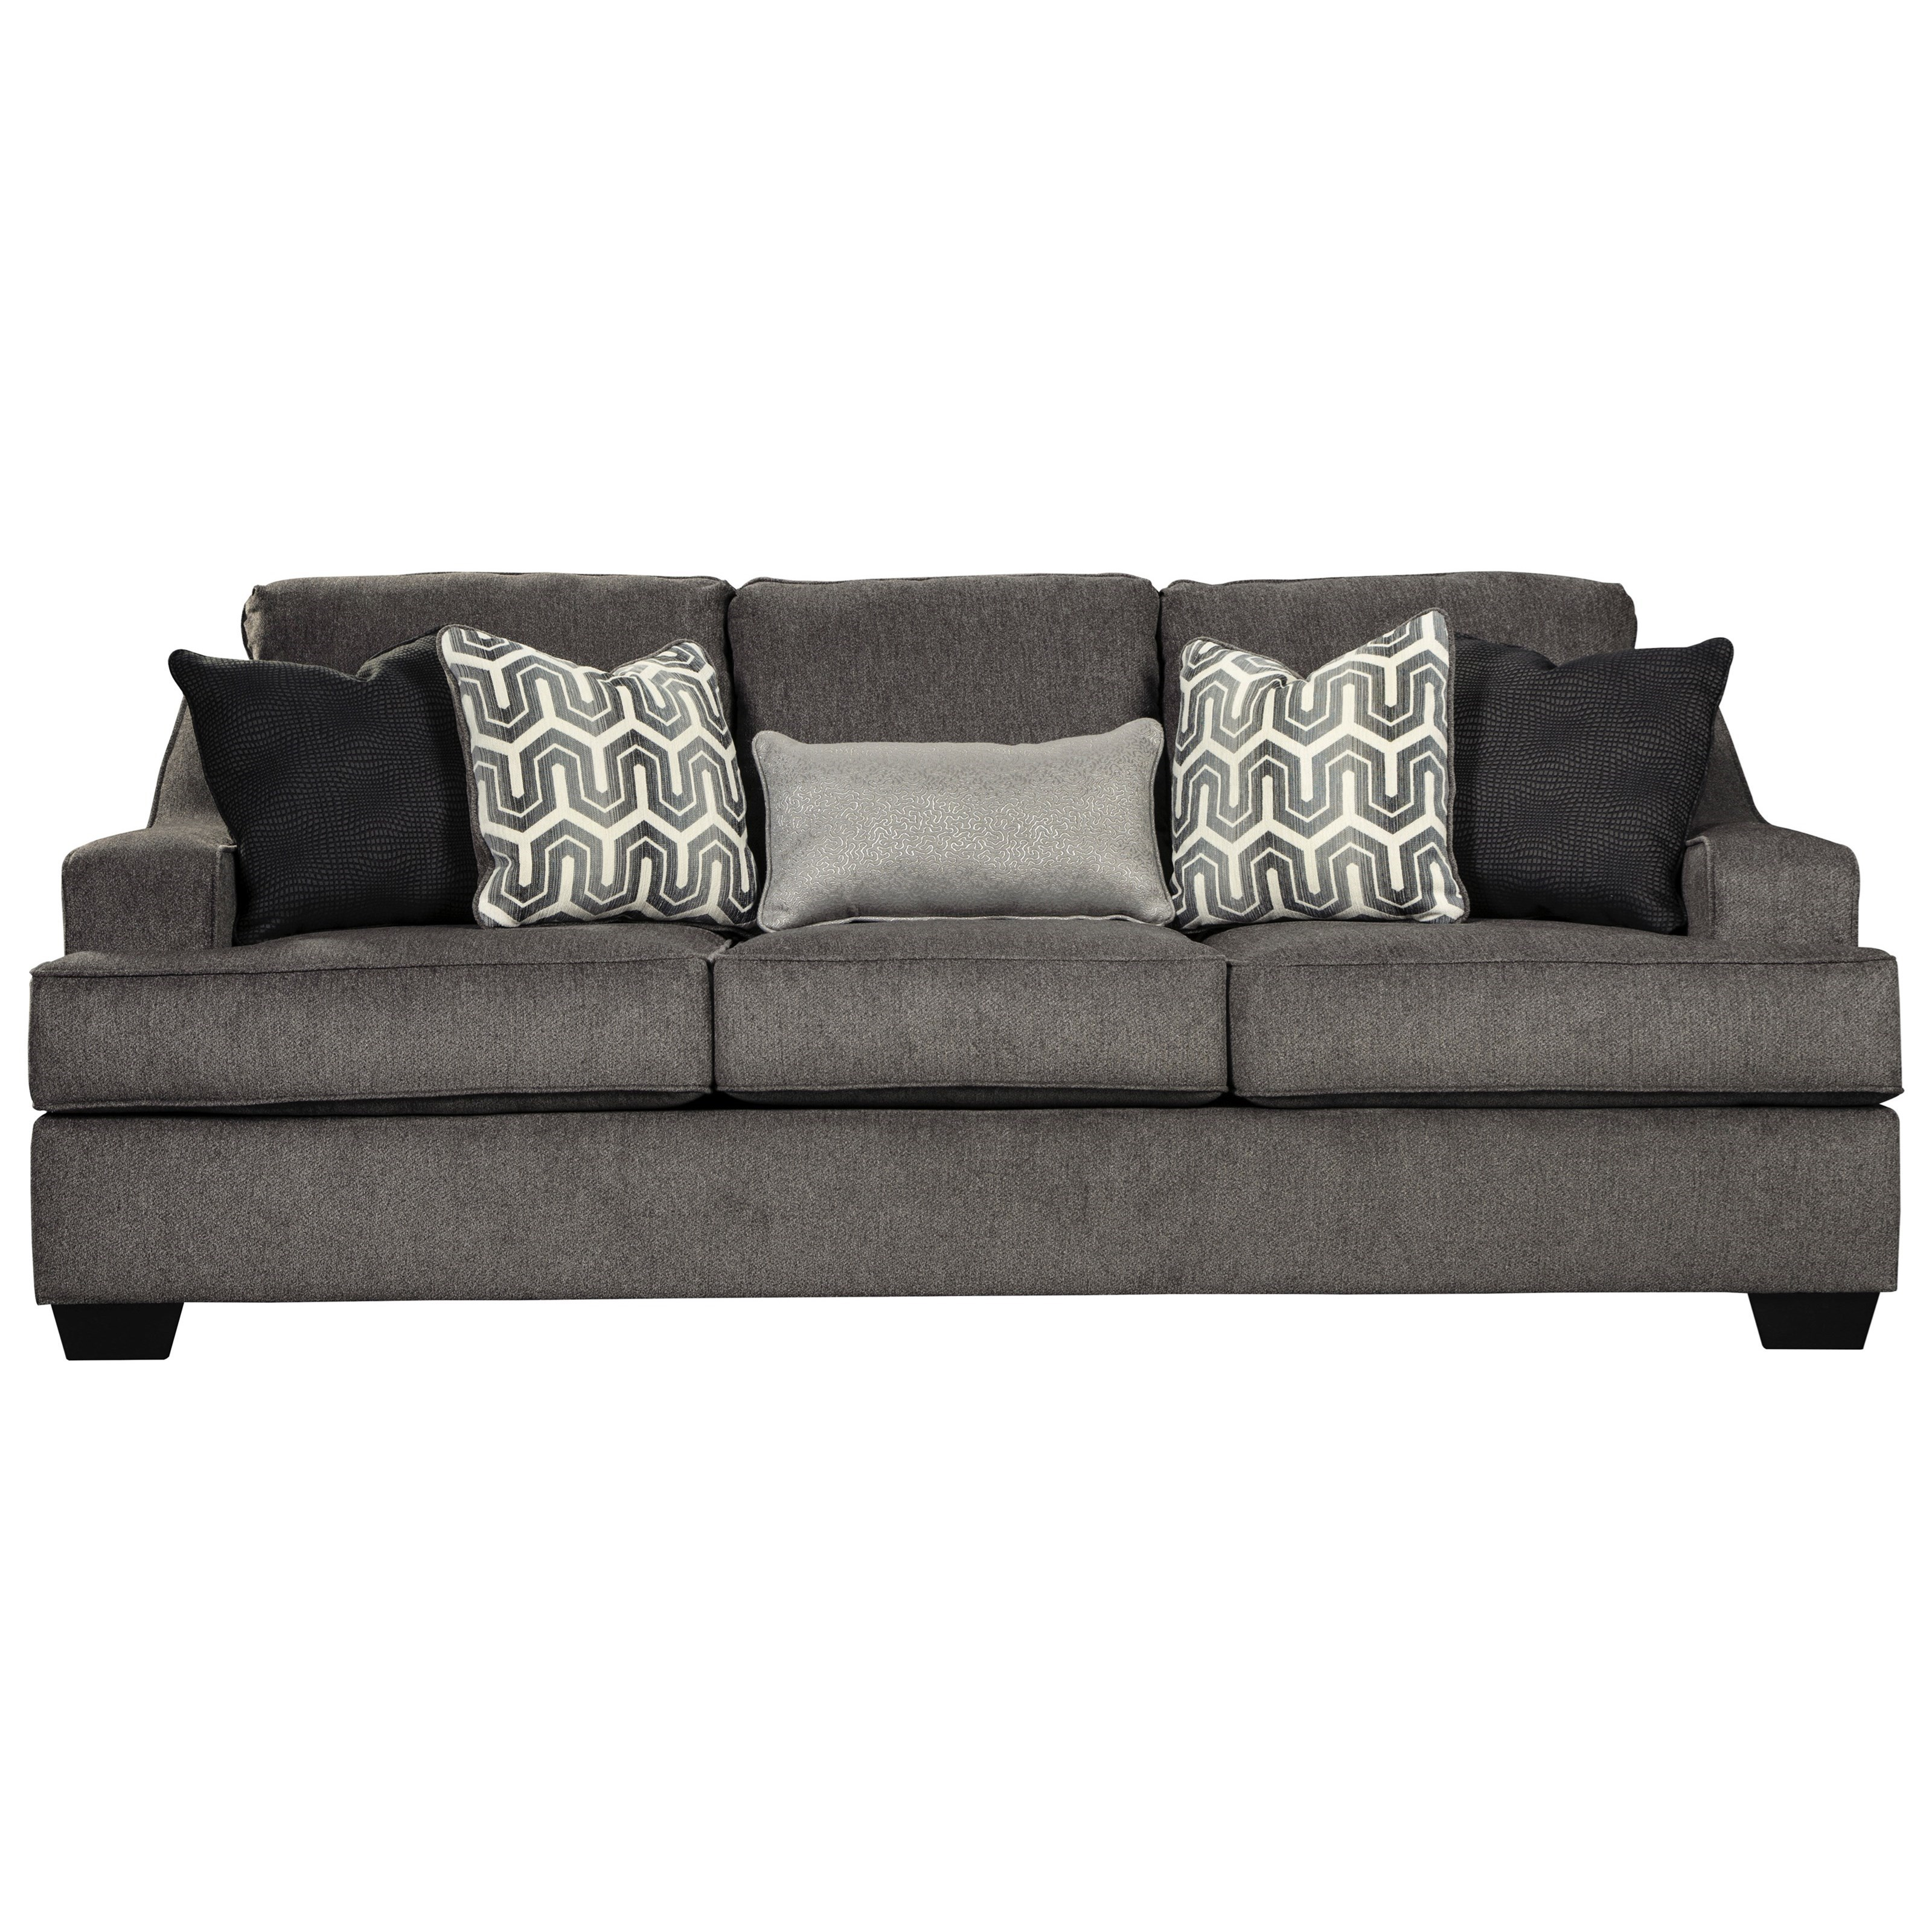 Signature Design by Ashley Gilmer Sofa - Item Number: 6560338